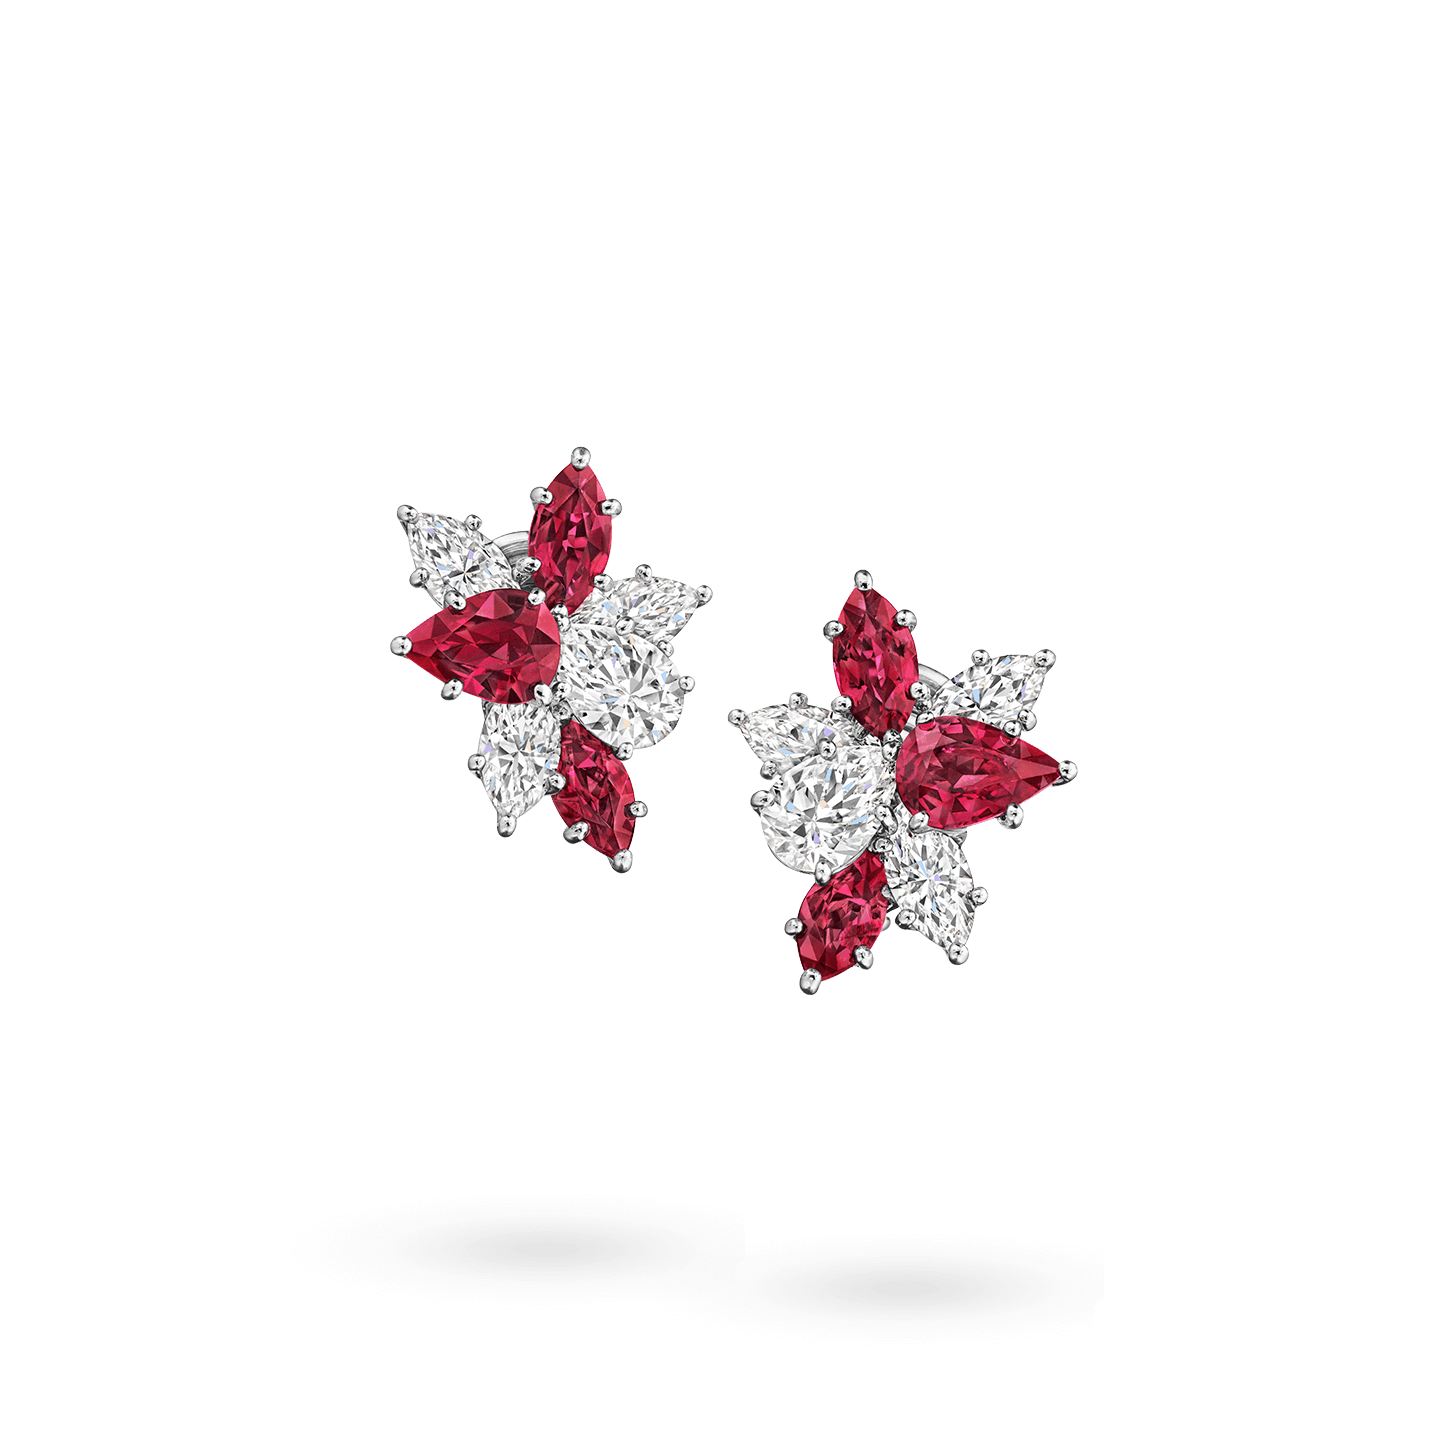 Winston Cluster Ruby and Diamond Earrings, Product Image 1